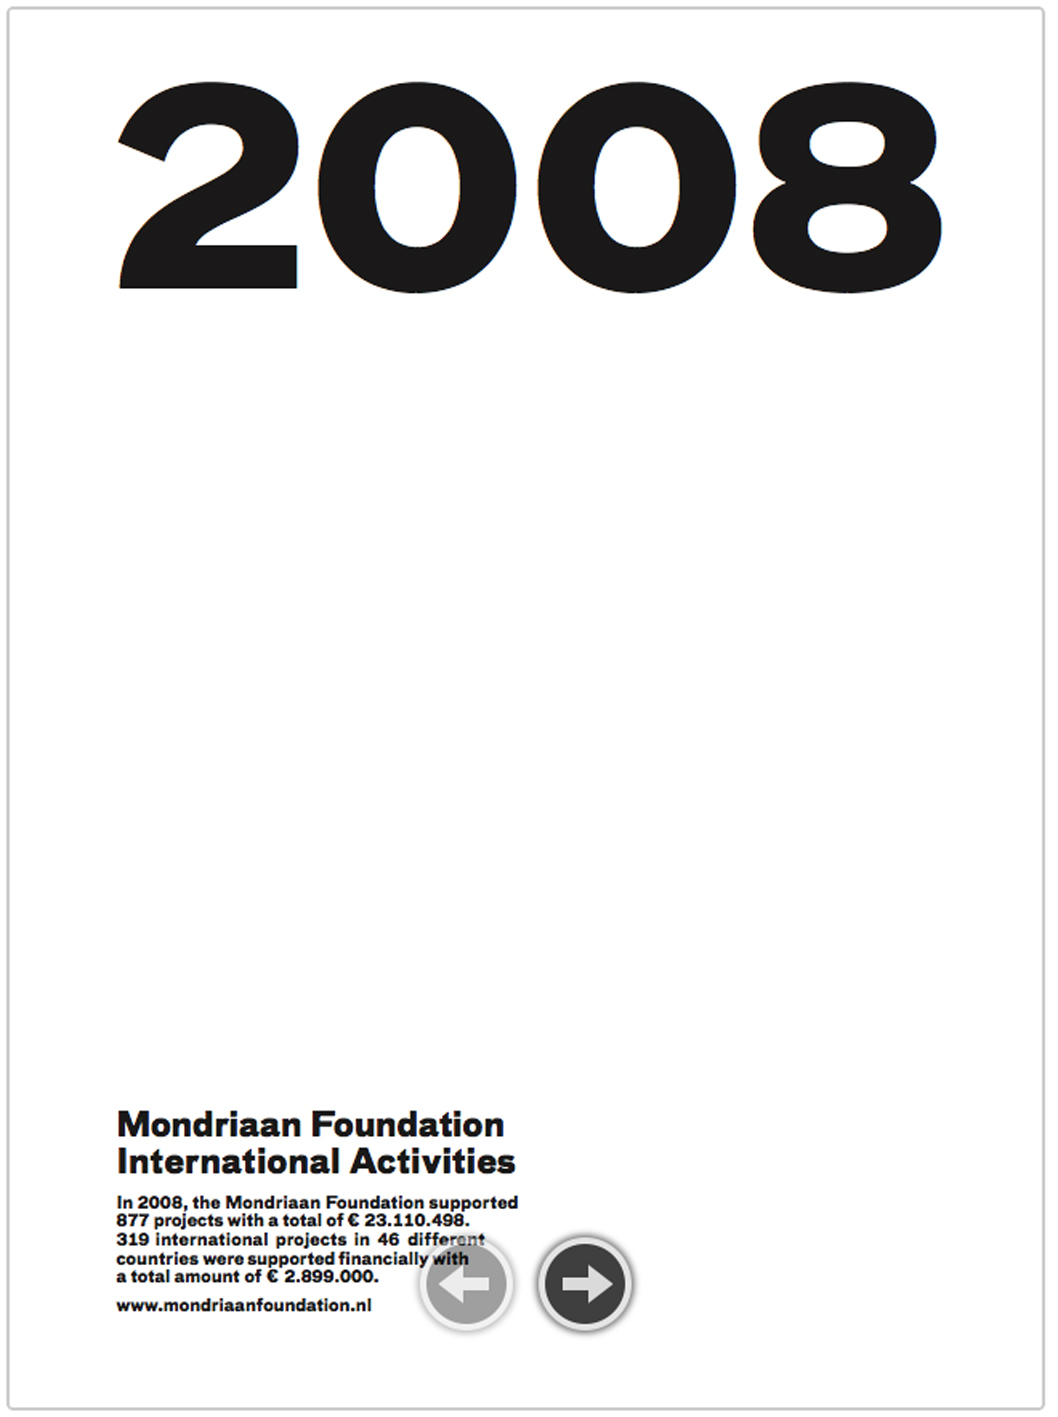 mondriaan foundation annual report 2008